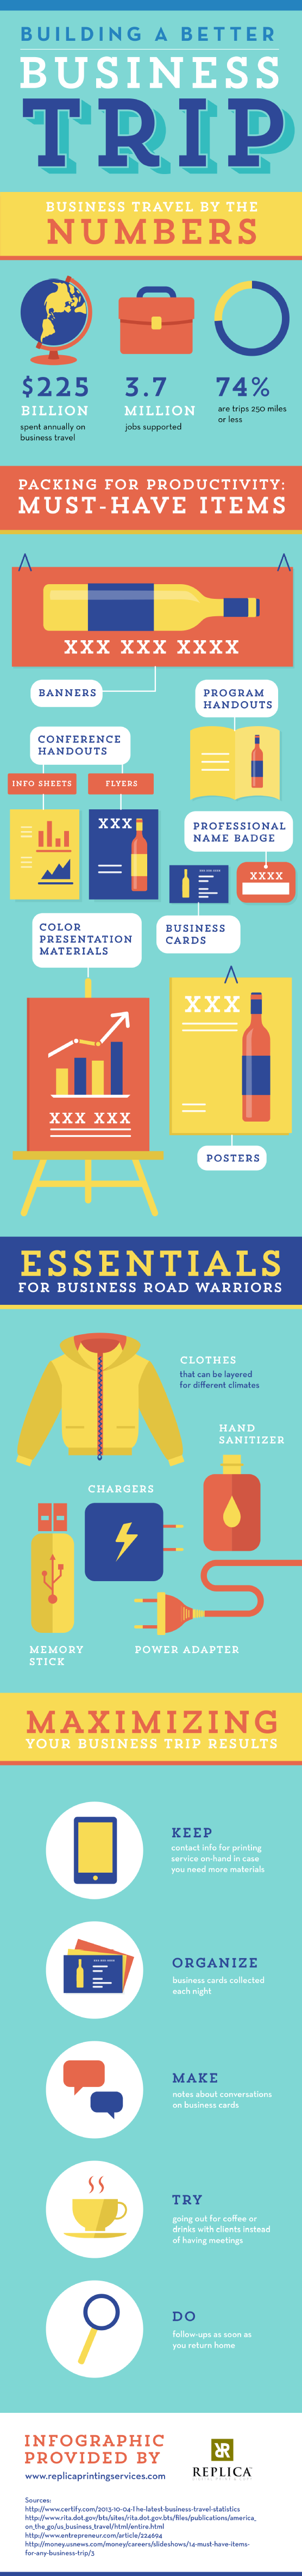 Building a Better Business Trip [Infographic]